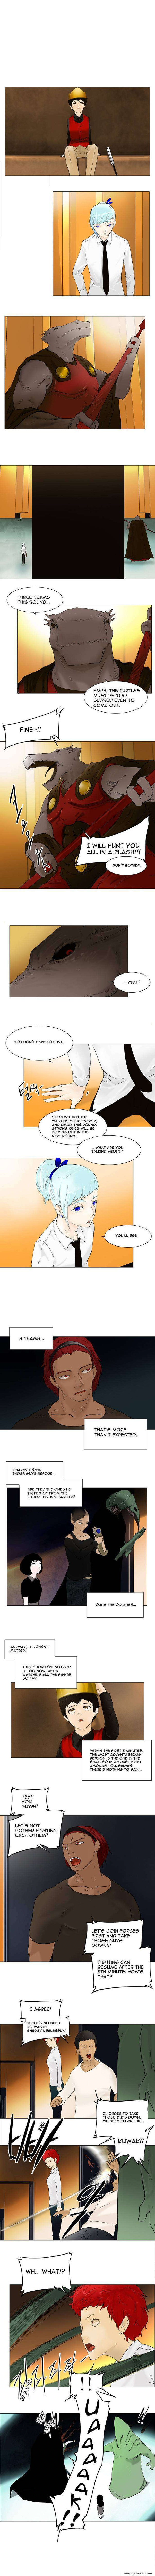 Tower of God 23 Page 2